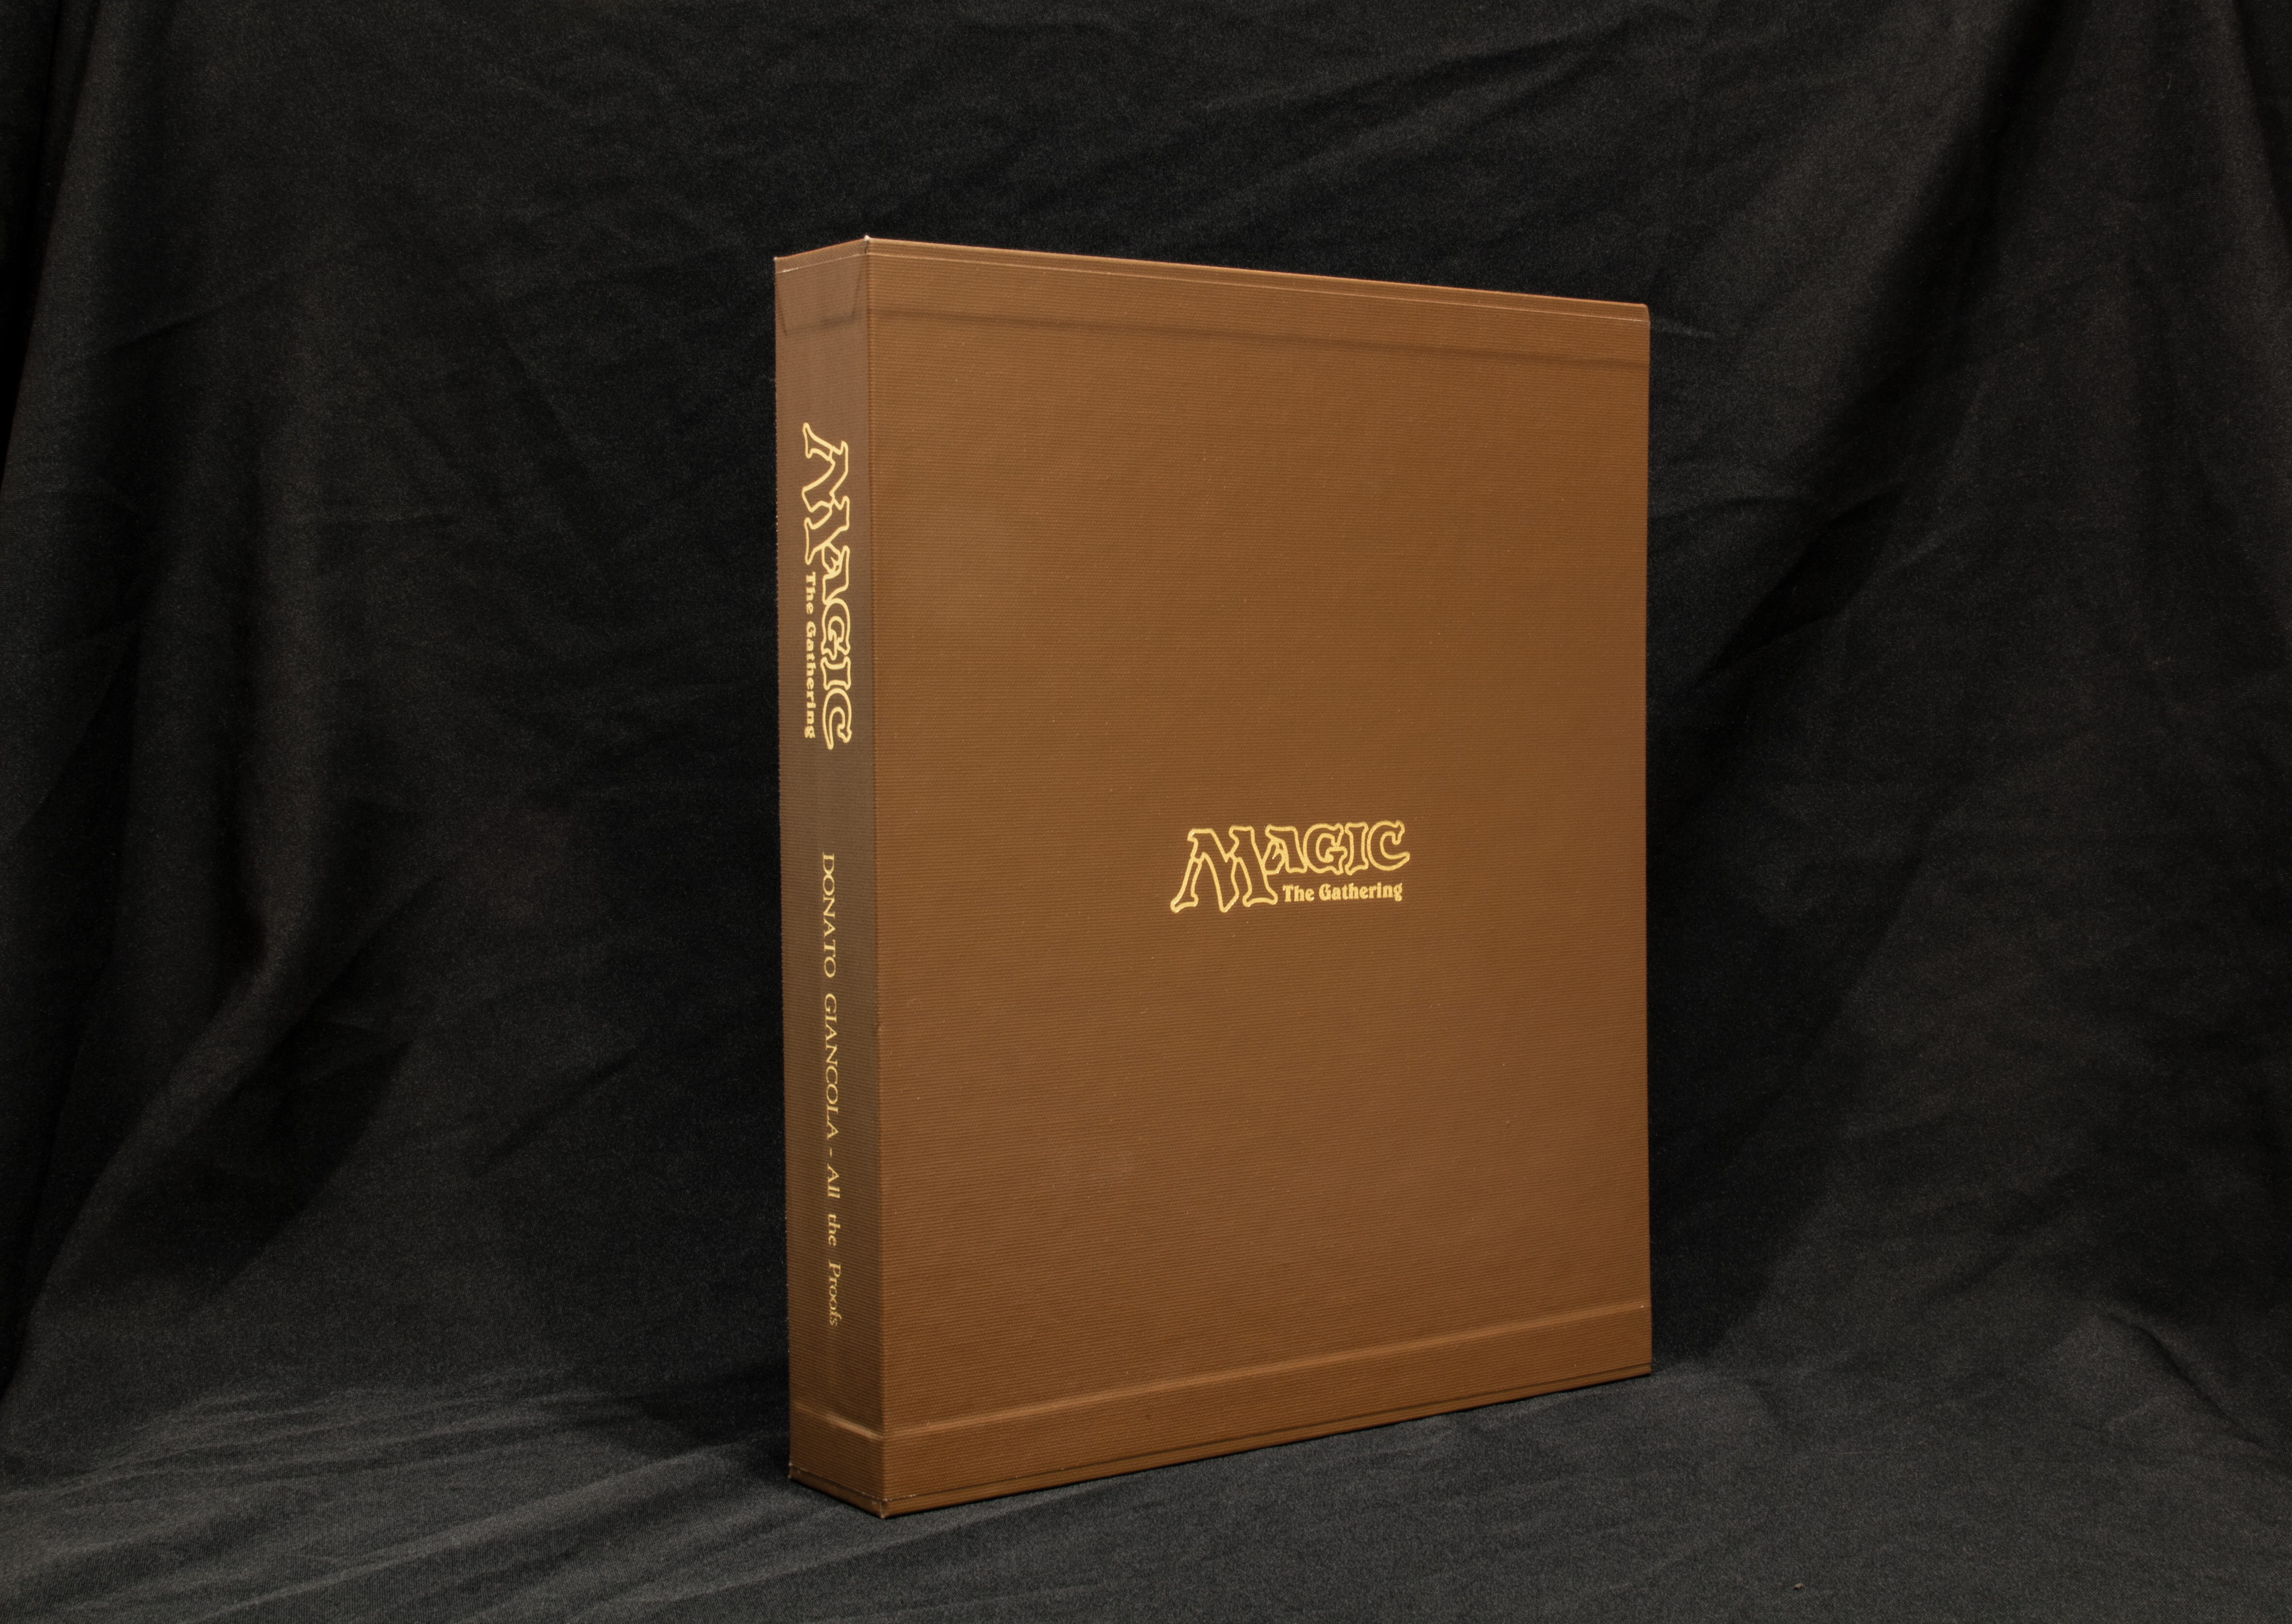 Archival and professionally embossed slipcase cover for protection of the leather binder and proofs Tan only